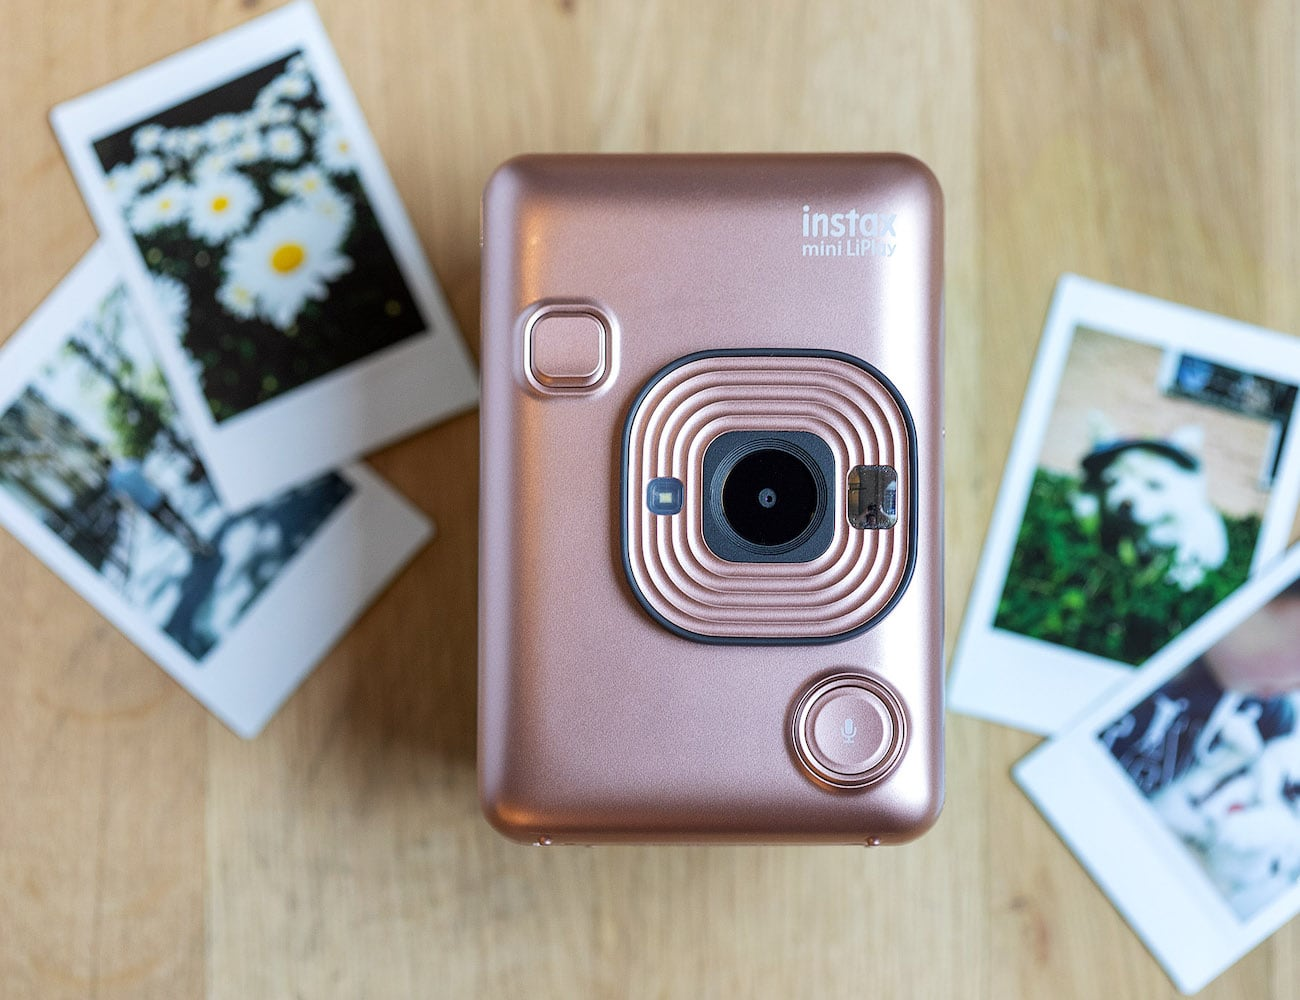 Fujifilm Instax Mini LiPlay Smartphone Printer Camera lets you print out photos on the go